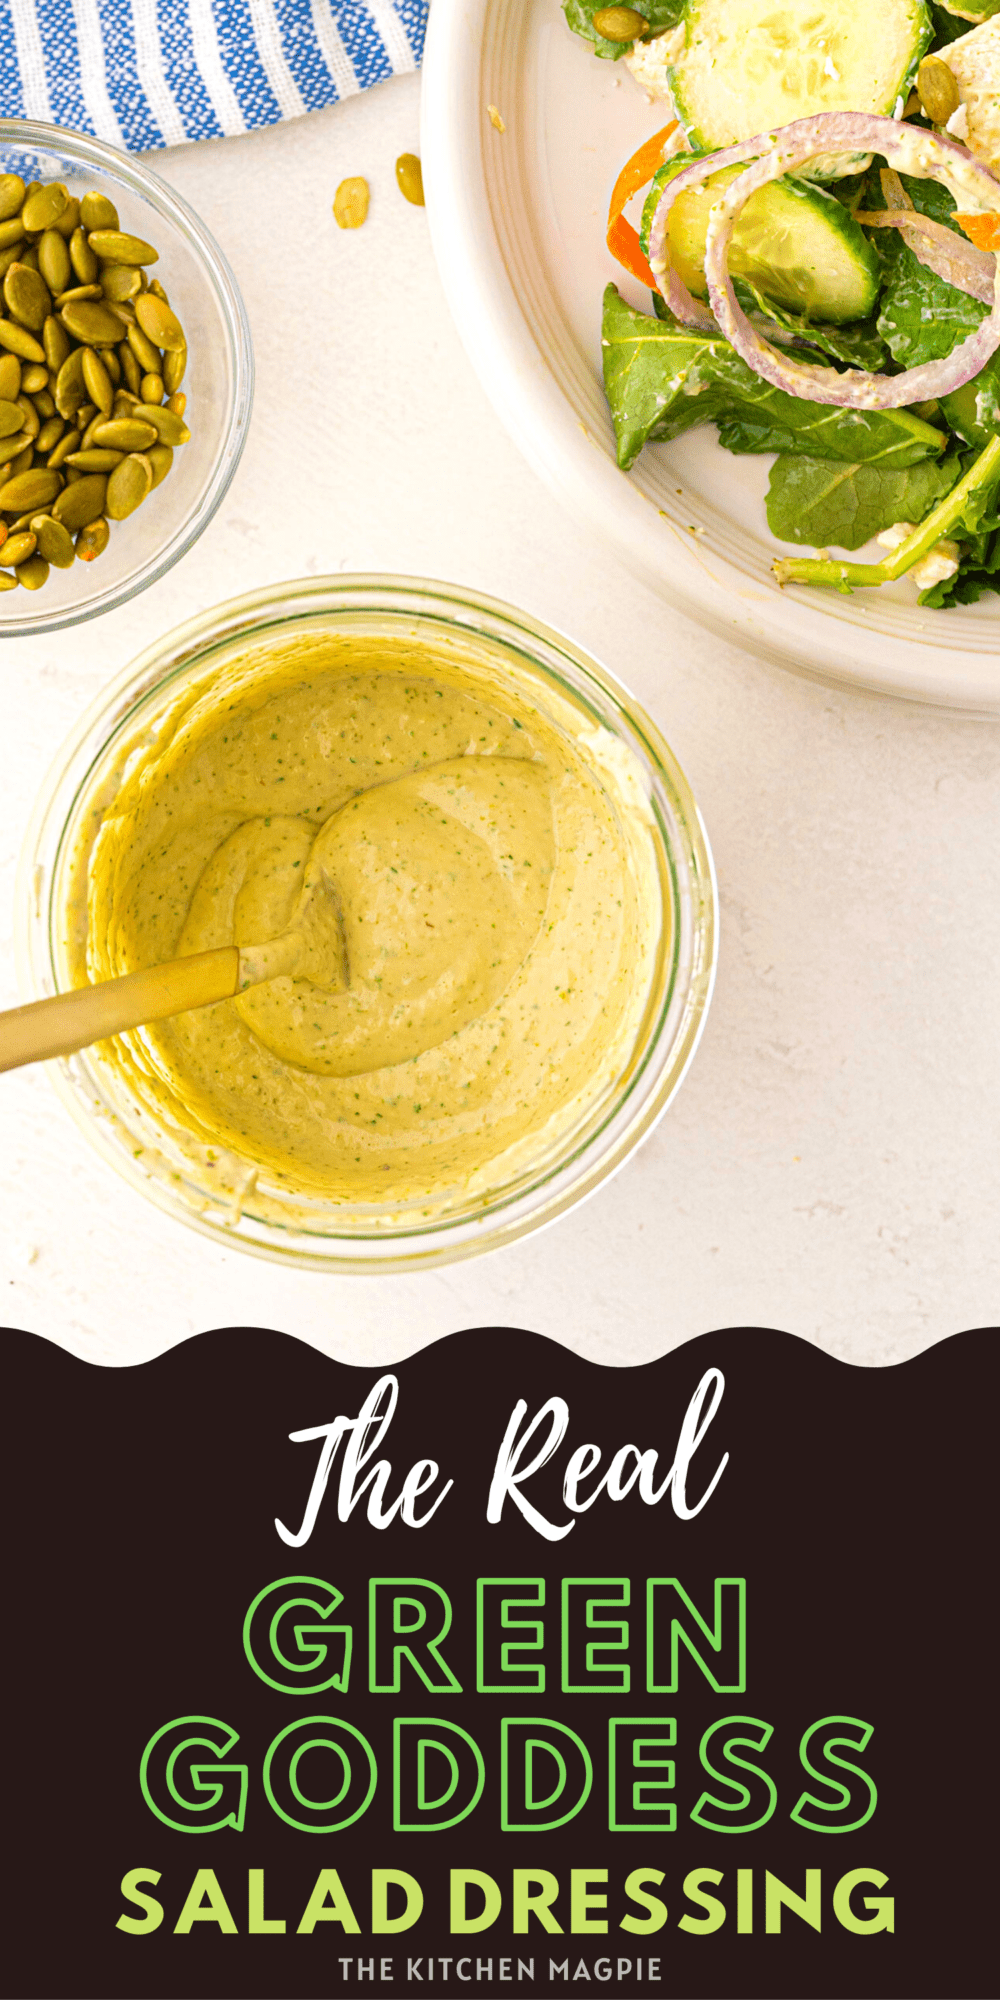 How to make the real Green Goddess dressing, the San Francisco version that has anchovy paste, chives, parsley, tarragon and more!